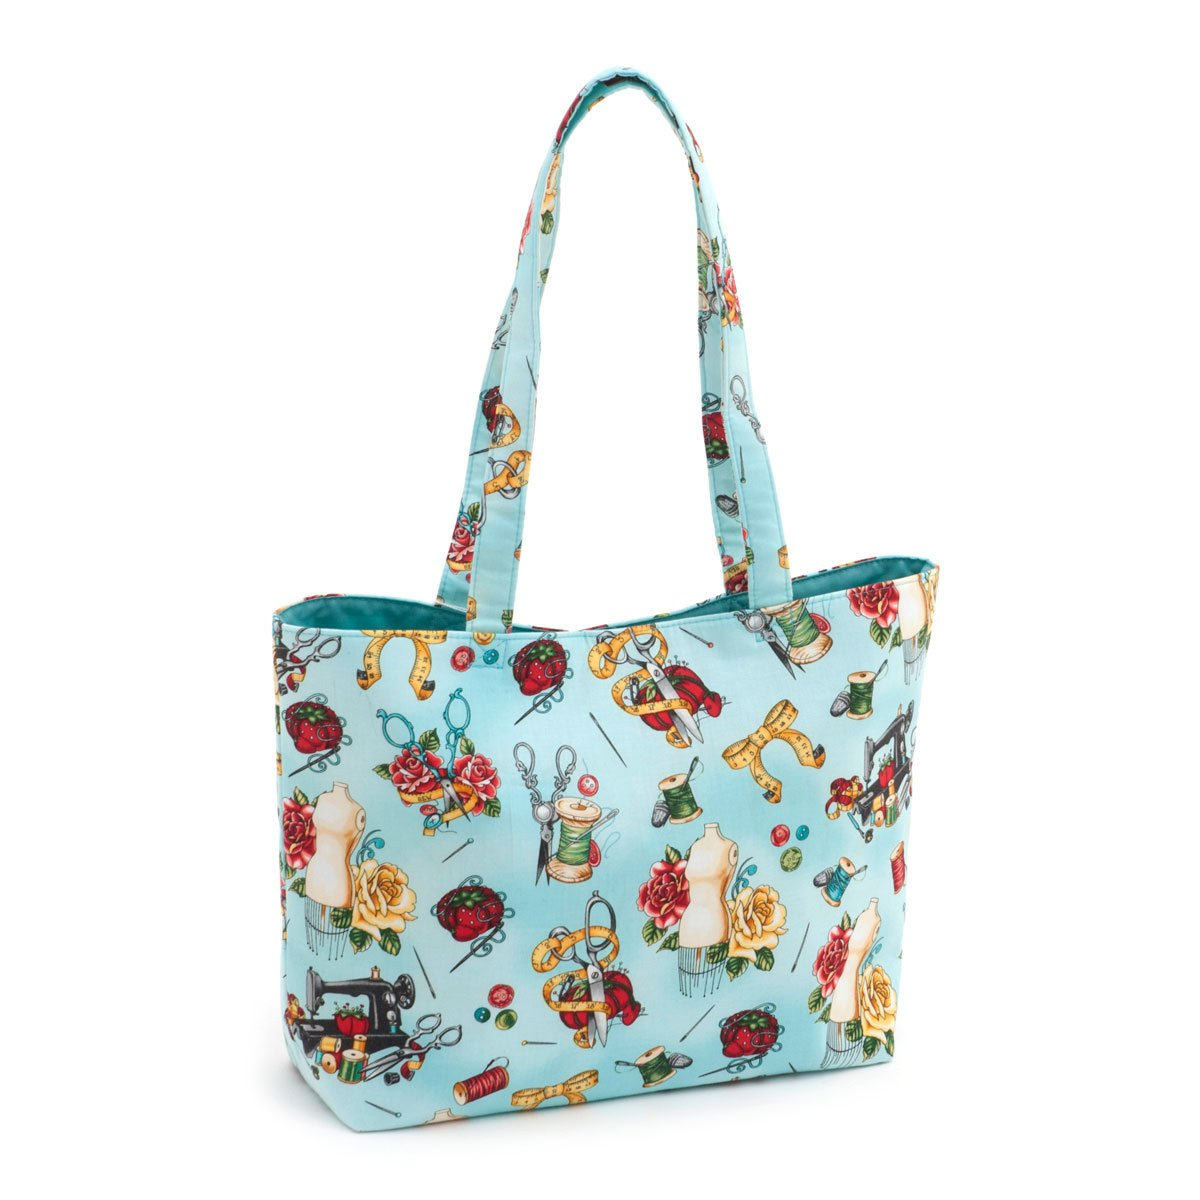 かわいい! 趣味Gift ' Tattoo Notions Tattoo ' B06ZY6FMWB Small Tote 13 Bag 13 x 34 x 27 cm (D/W/H) B06ZY6FMWB, 毛呂山町:cdd65ca7 --- 4x4.lt